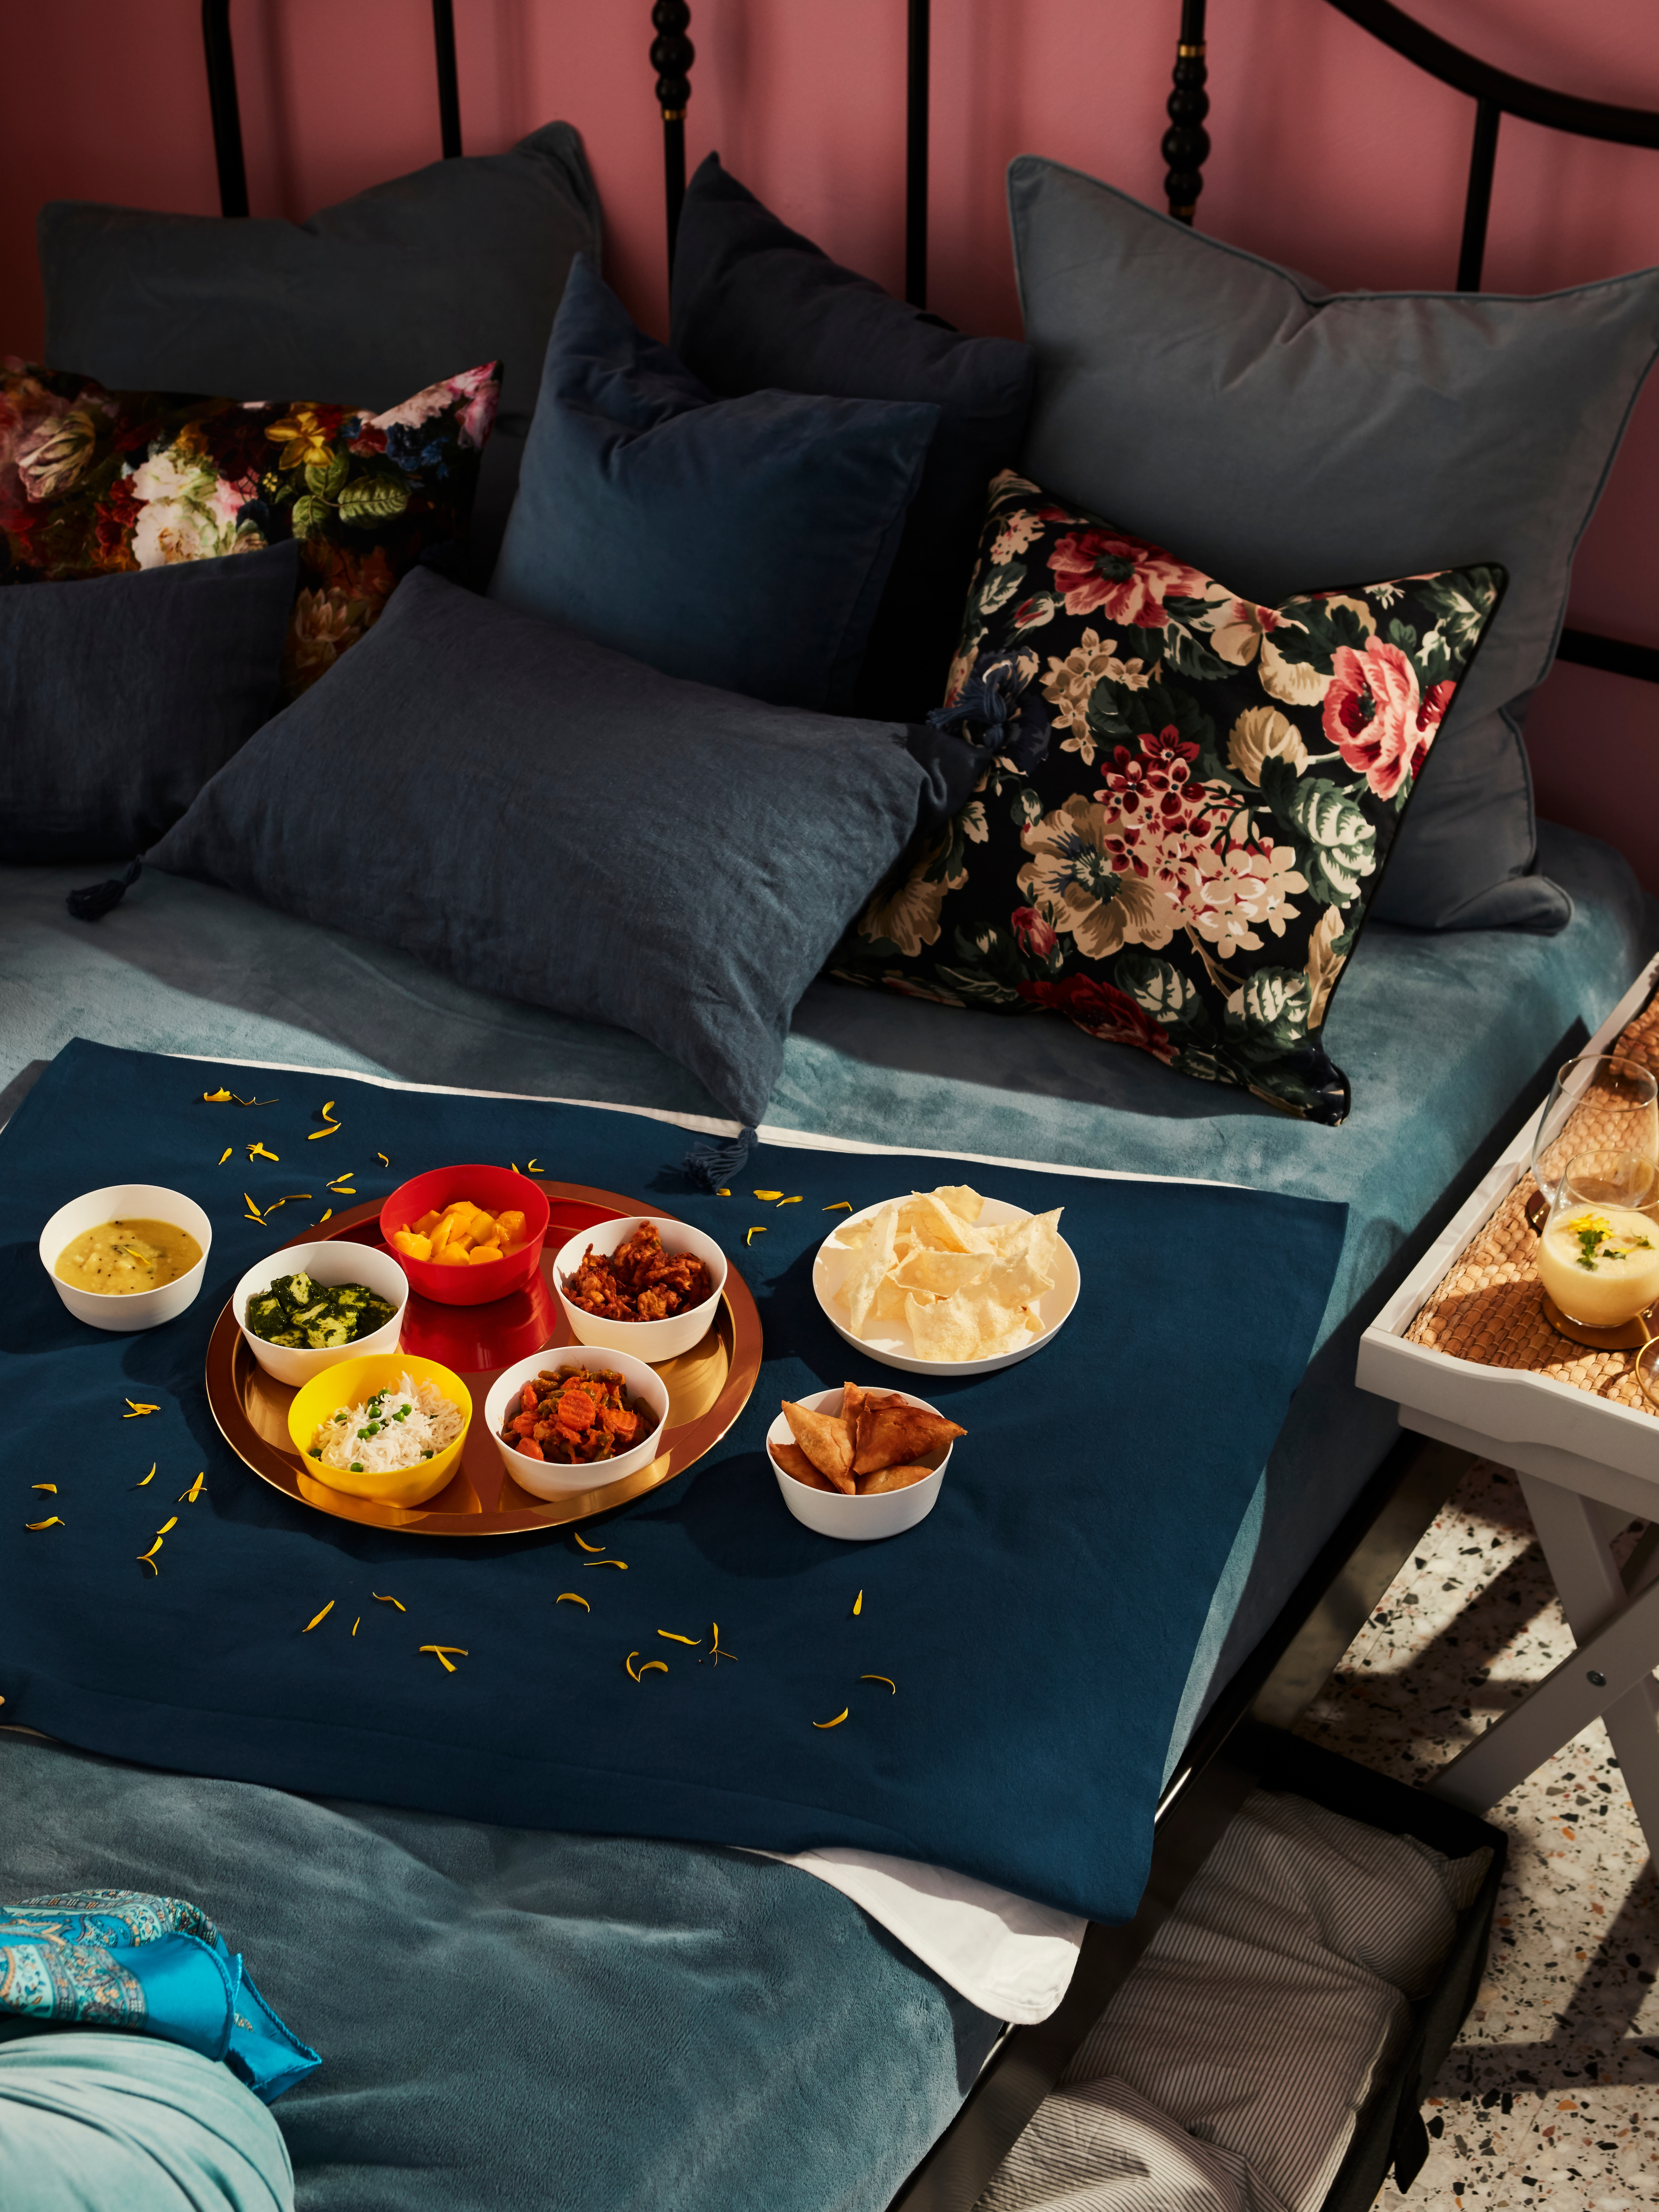 A made bed has a thin cushion on it like a table. A round, brass-coloured GLATTIS tray with bowls of food is on the cushion.